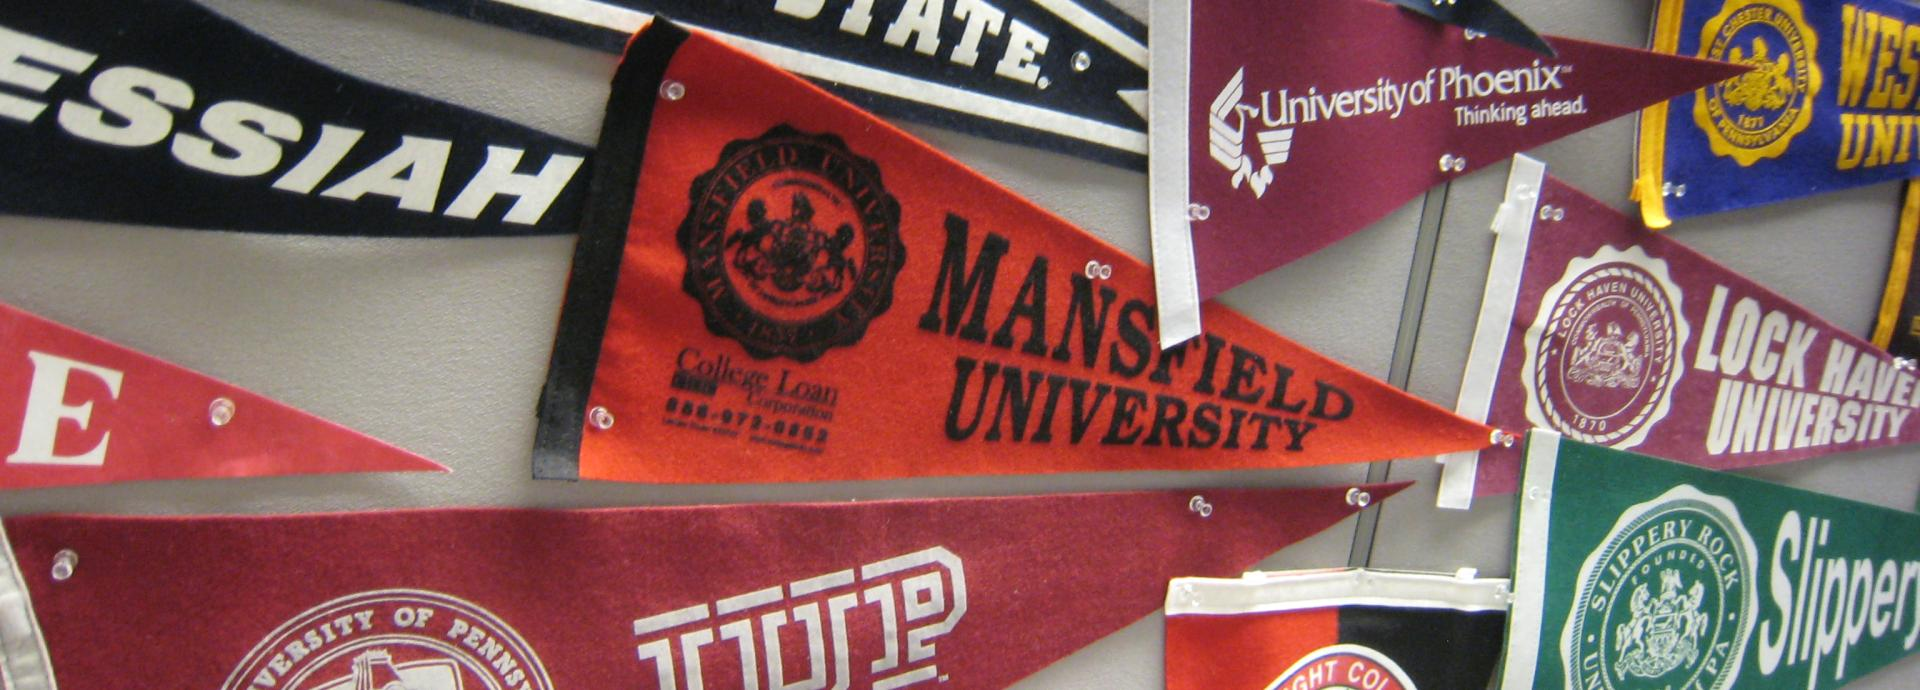 Many different university flags pinned on a wall